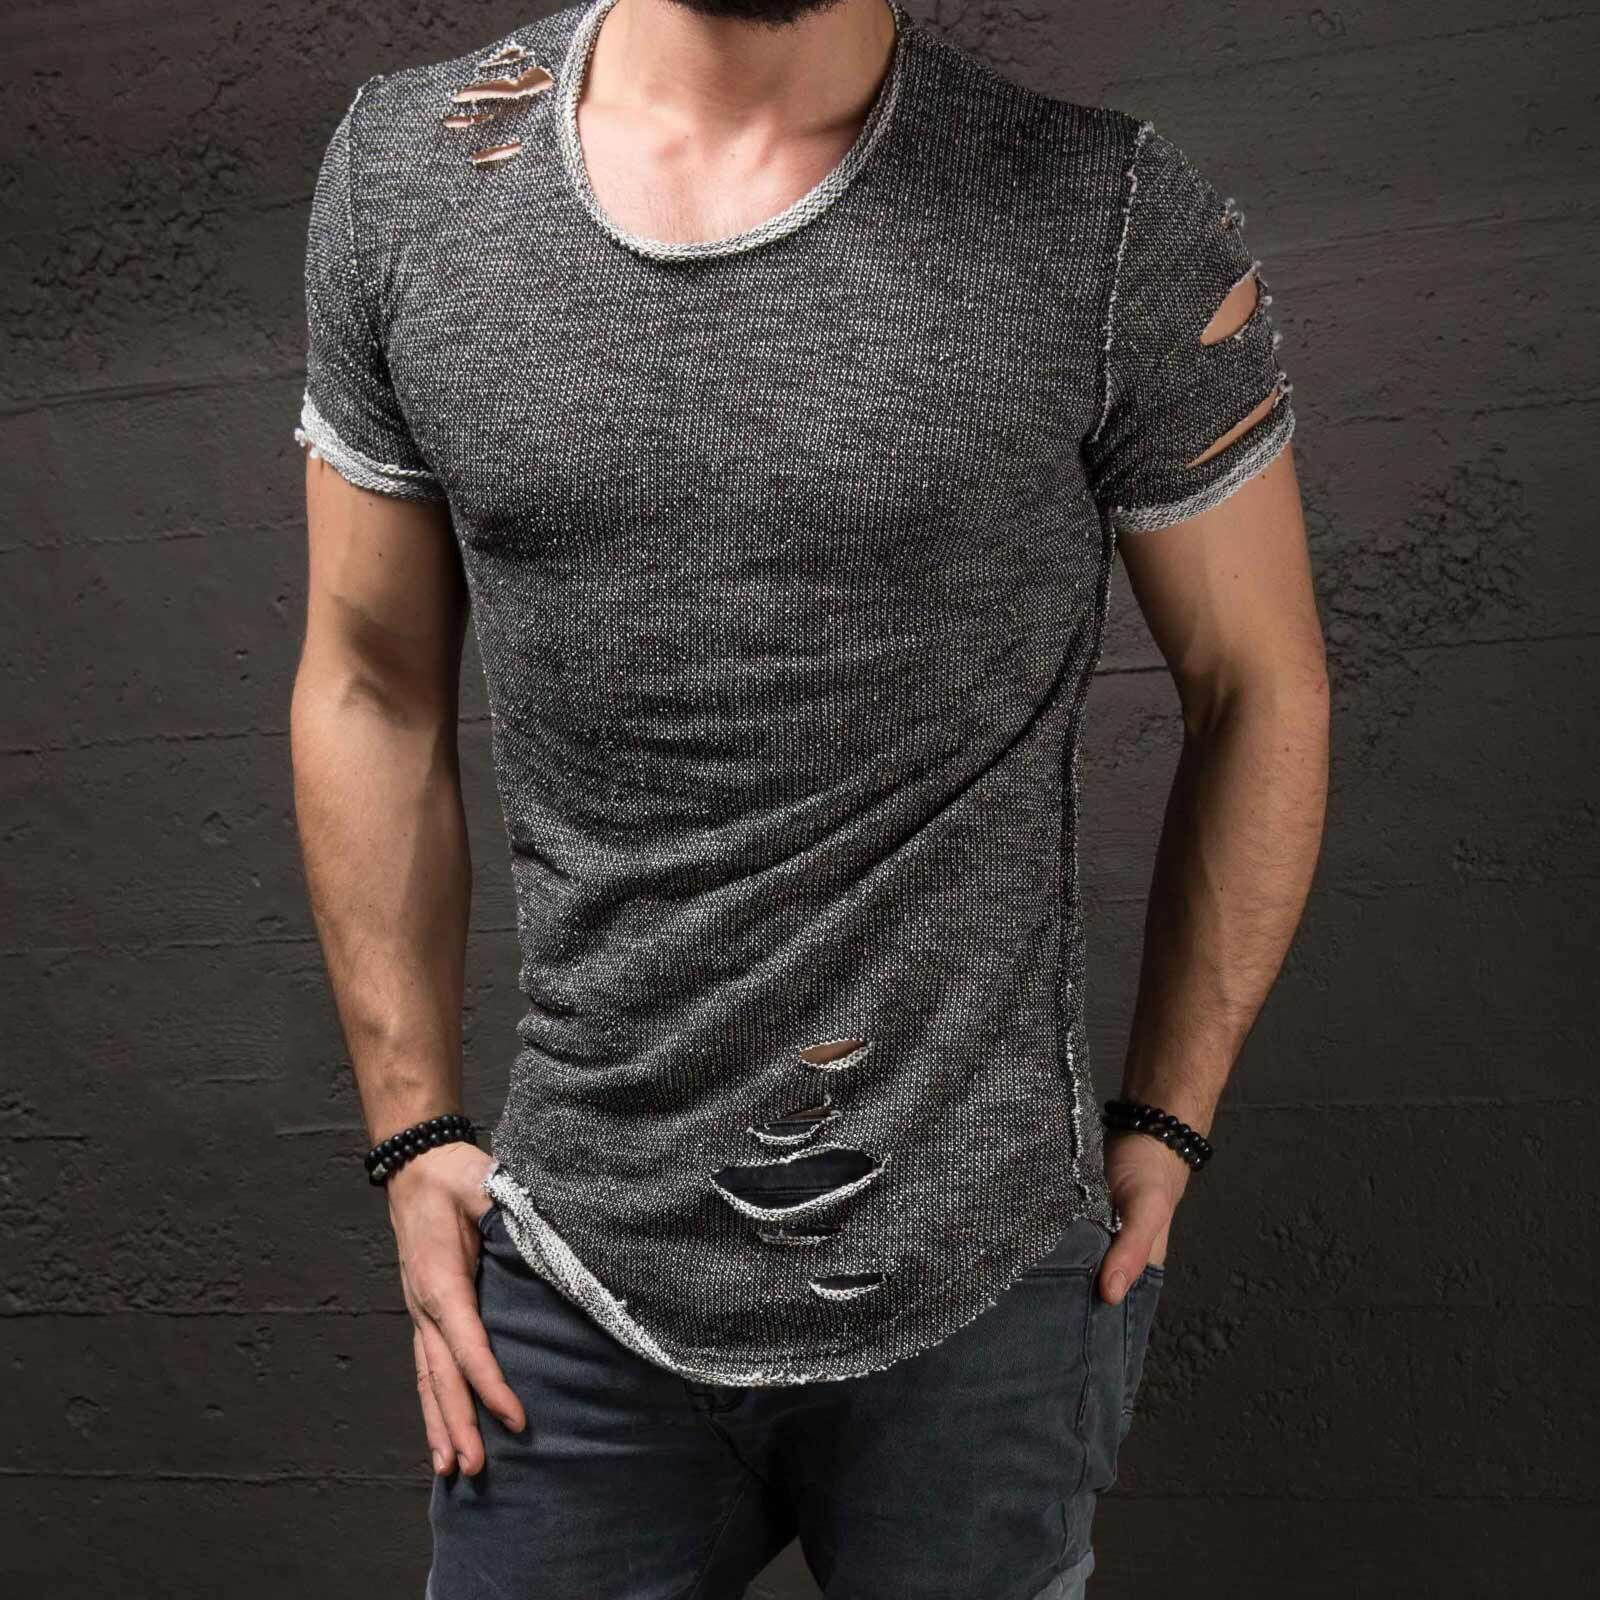 f2b31556a95a Ripped Men'S Slim Fit Muscle O Neck Distressed Tee Hole New Hot Tops Shirt  Casual Short Sleeve Frayed T Shirts-in T-Shirts from Men's Clothing on ...